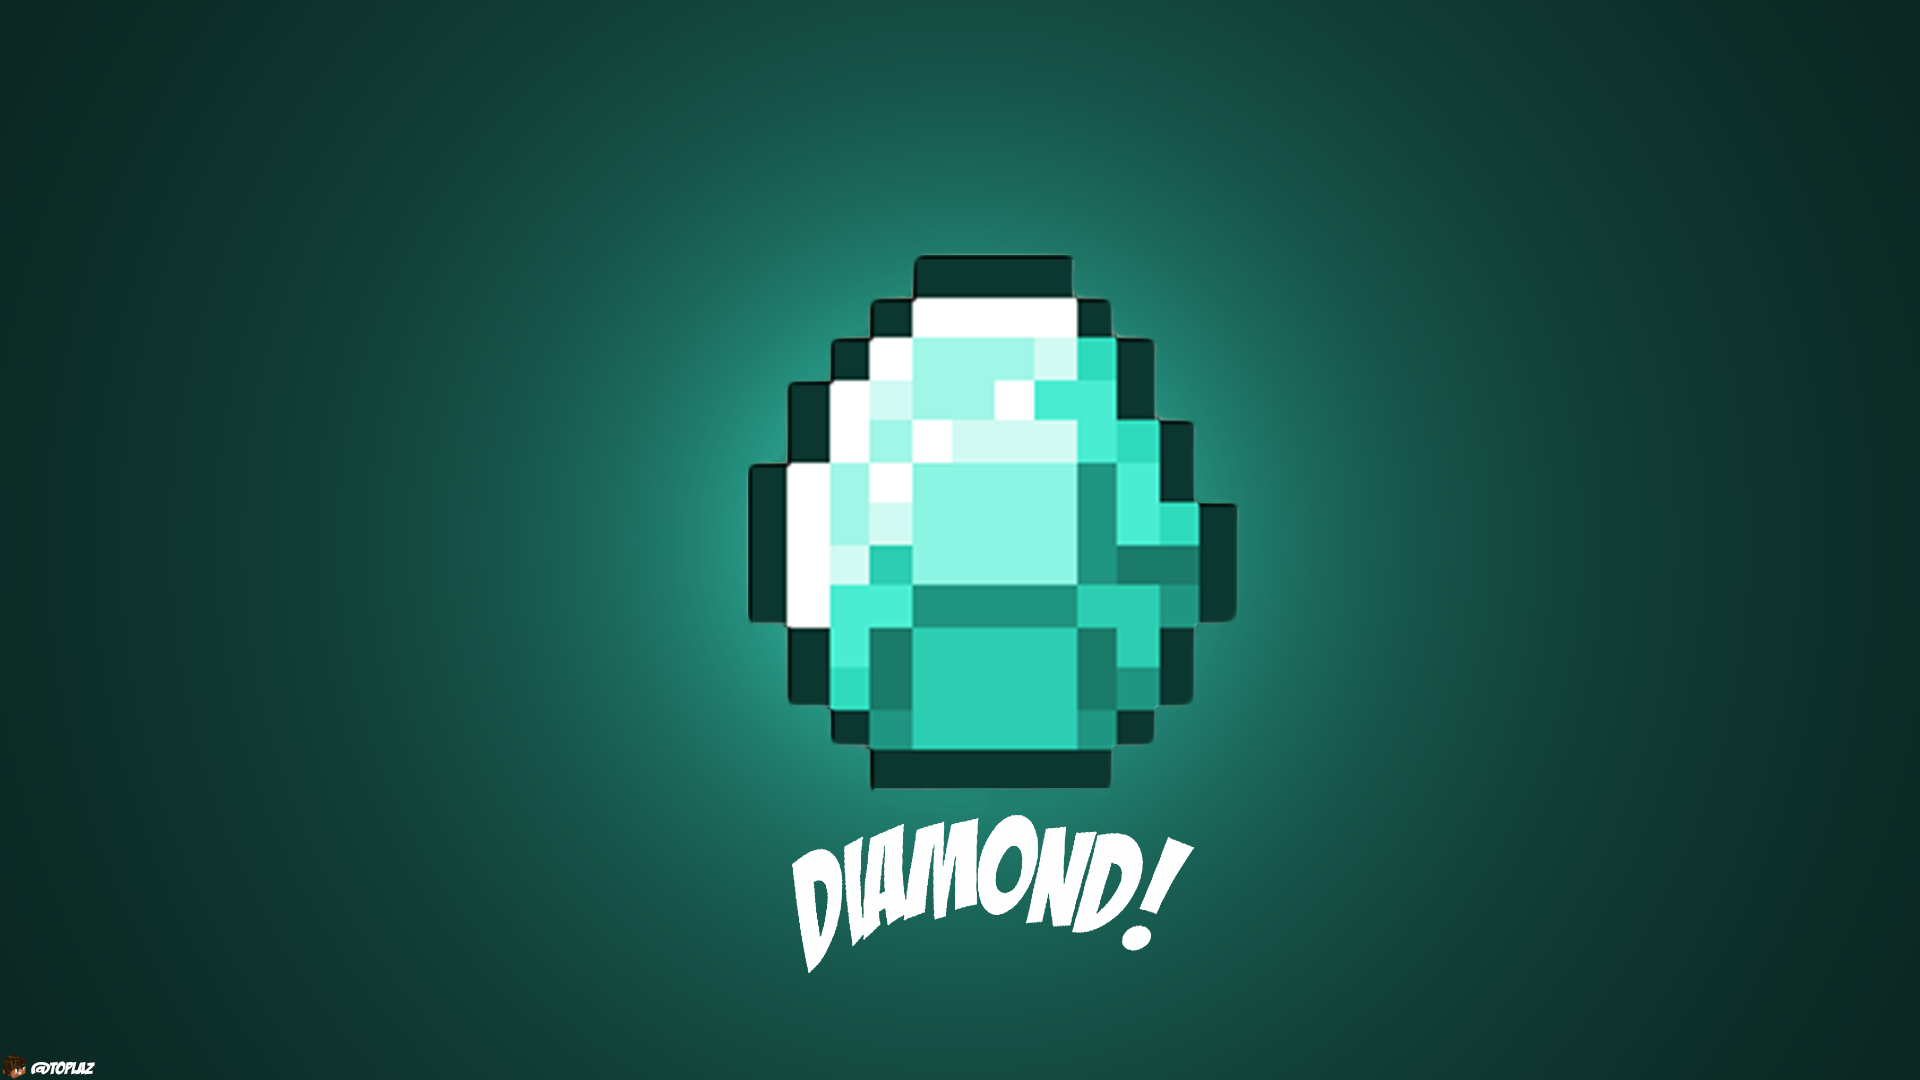 Diamond Minecraft Hd Games 4k Wallpapers Images Backgrounds Photos And Pictures